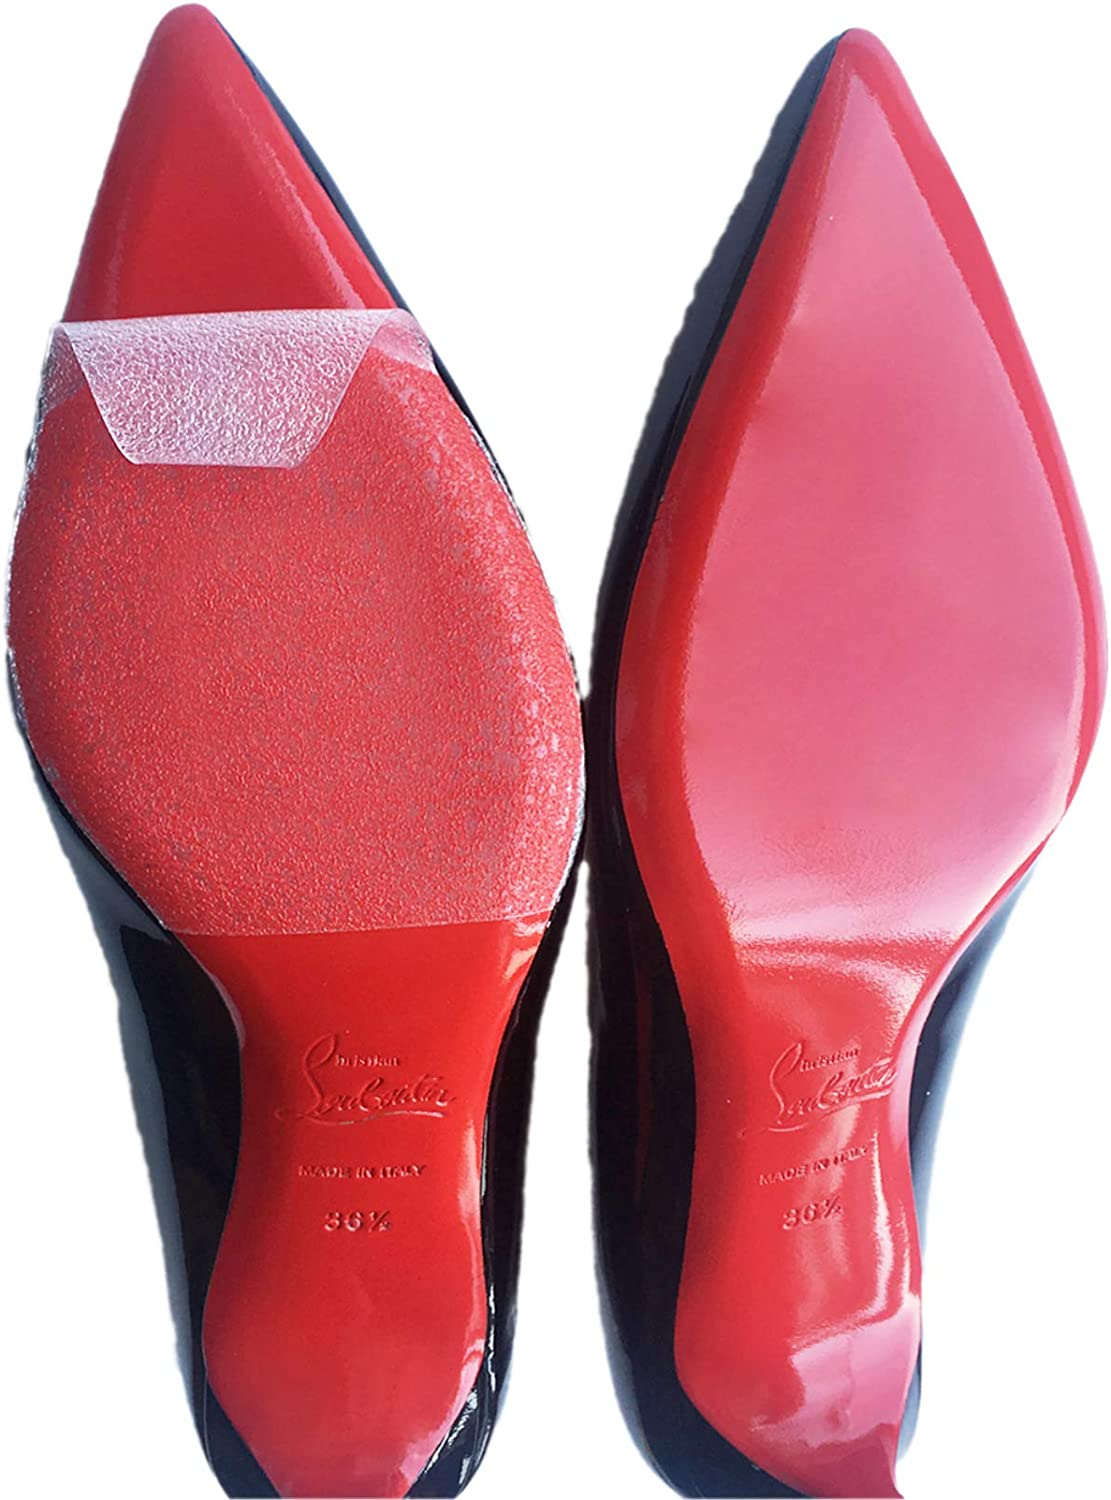 Crystal Clear Sole Protector for